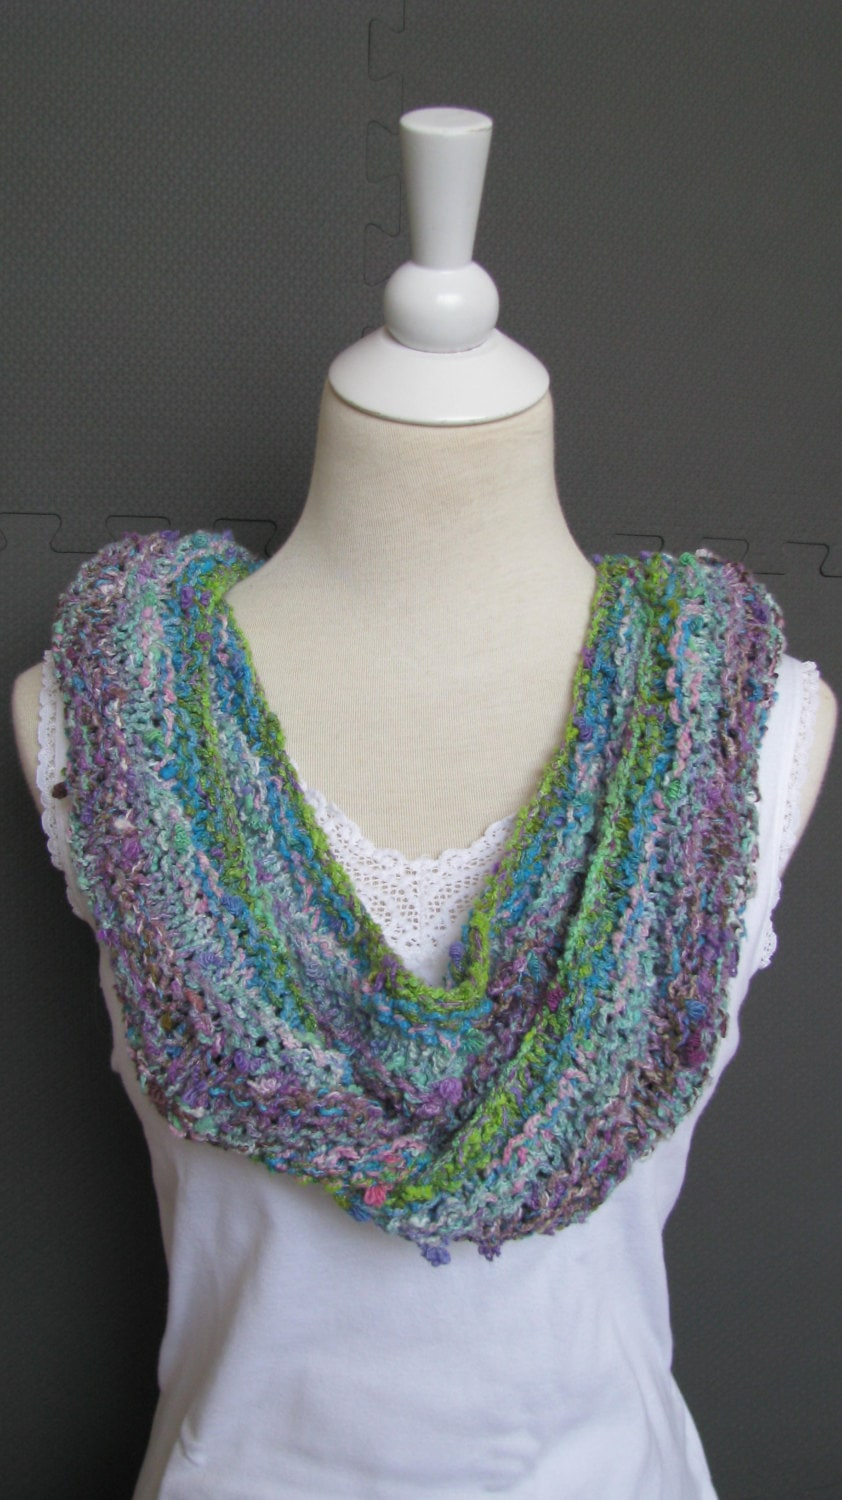 Knitting Yarn Scarf : Instant download knitting pattern knitted scarf noro yarn